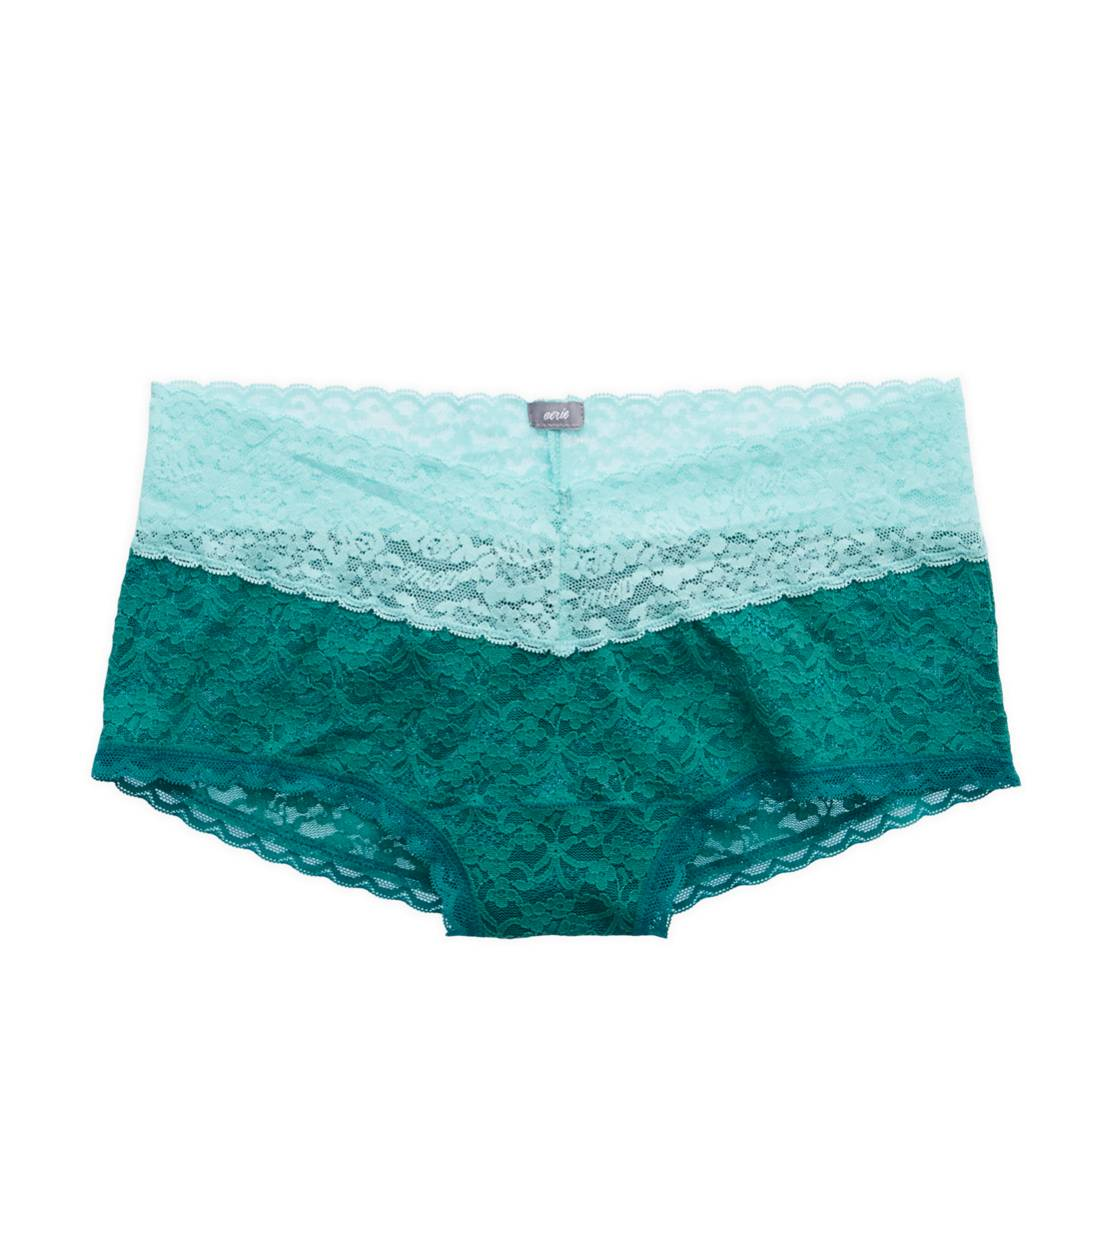 Teal Aerie Vintage Lace Girly Short